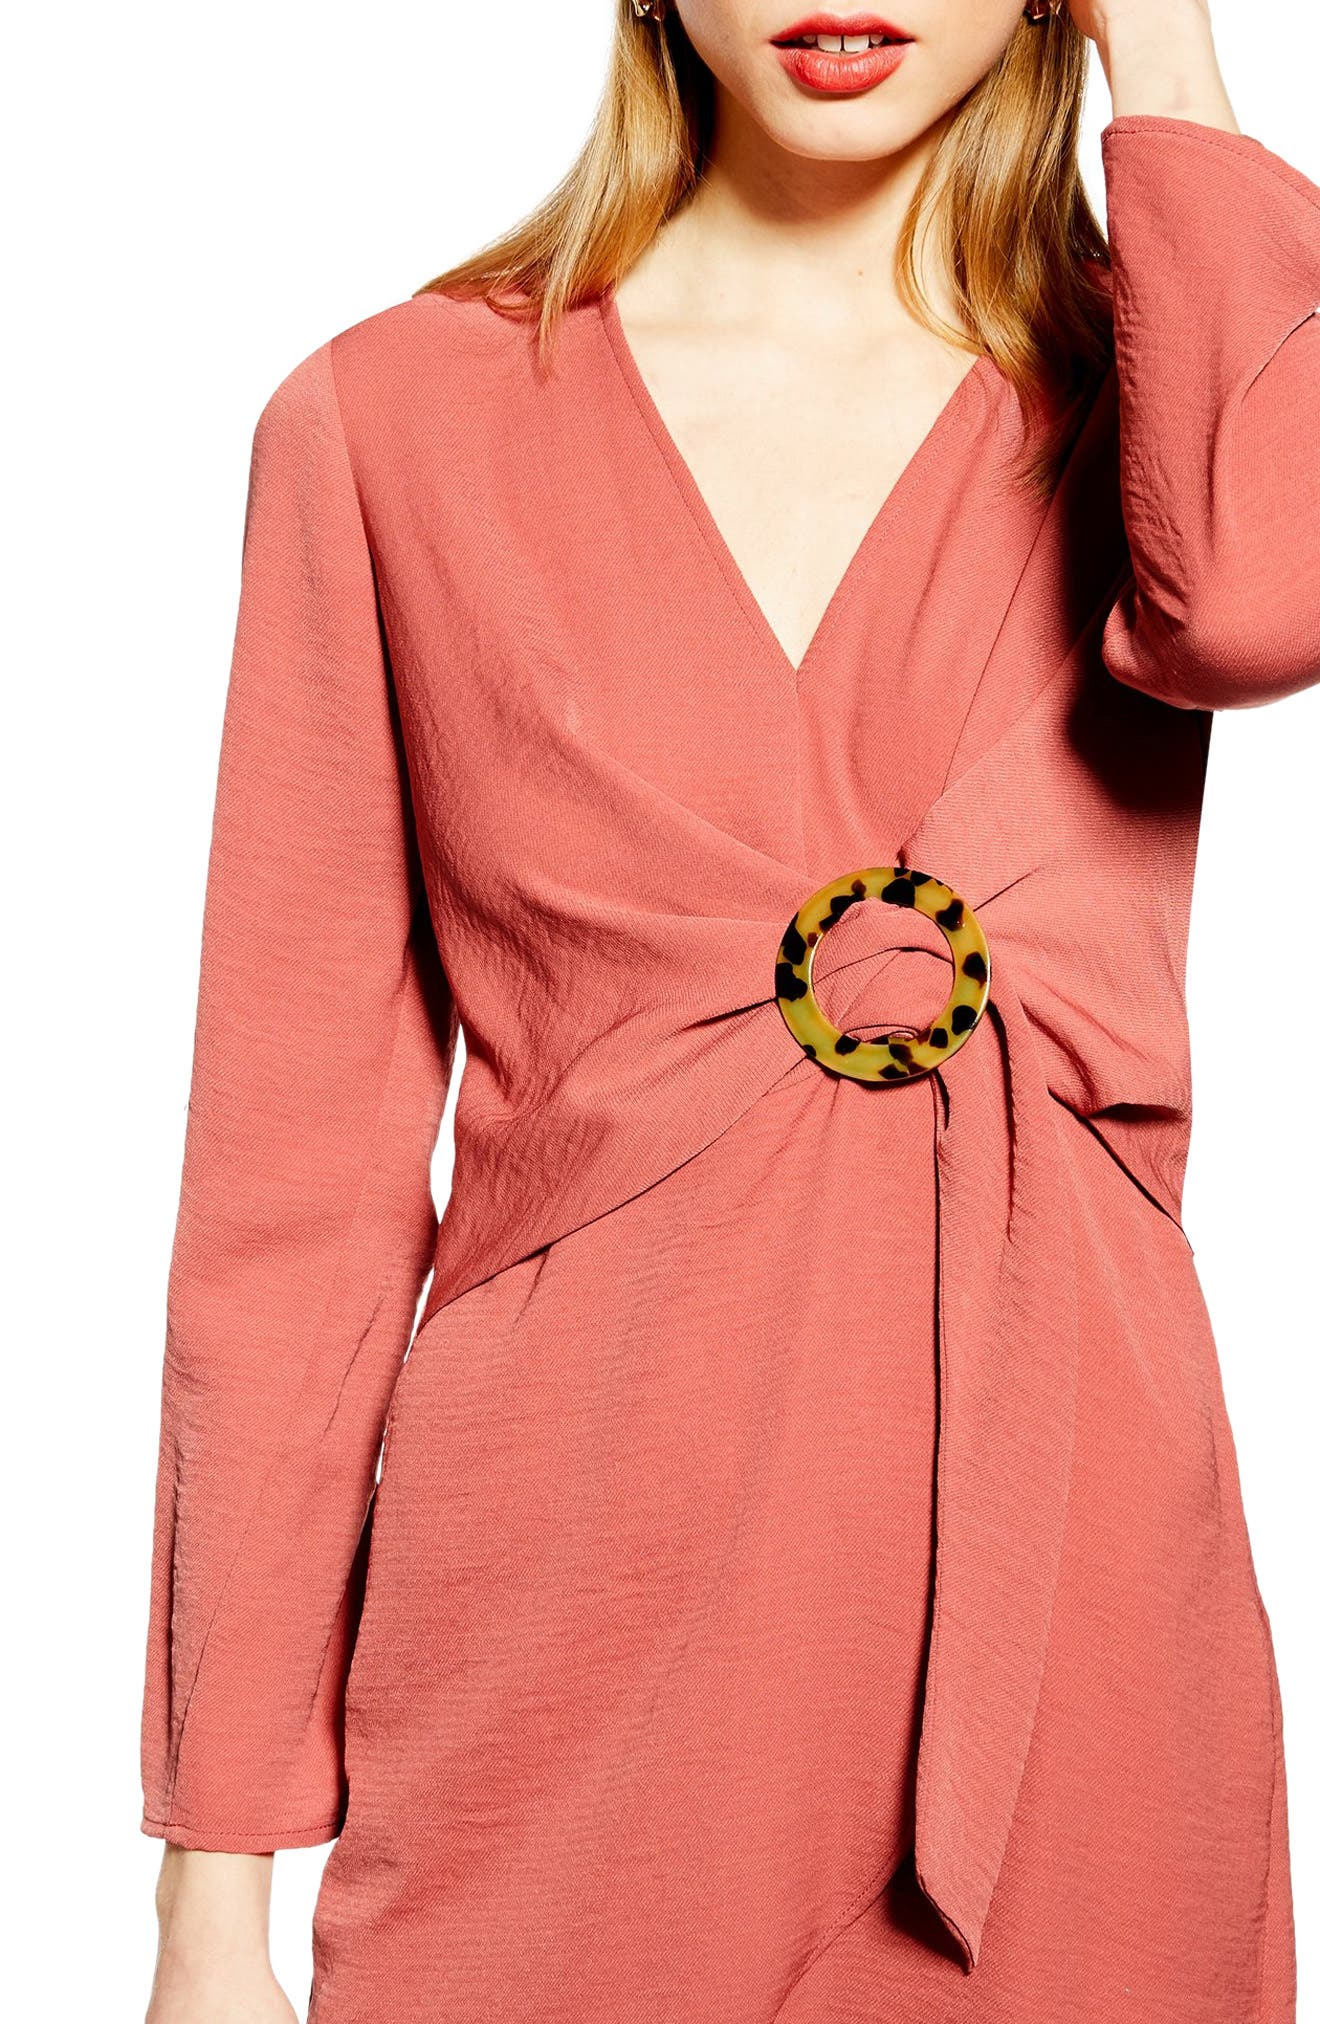 TOPSHOP, Tortoise Ring Minidress, Alternate thumbnail 4, color, DUSTY PINK